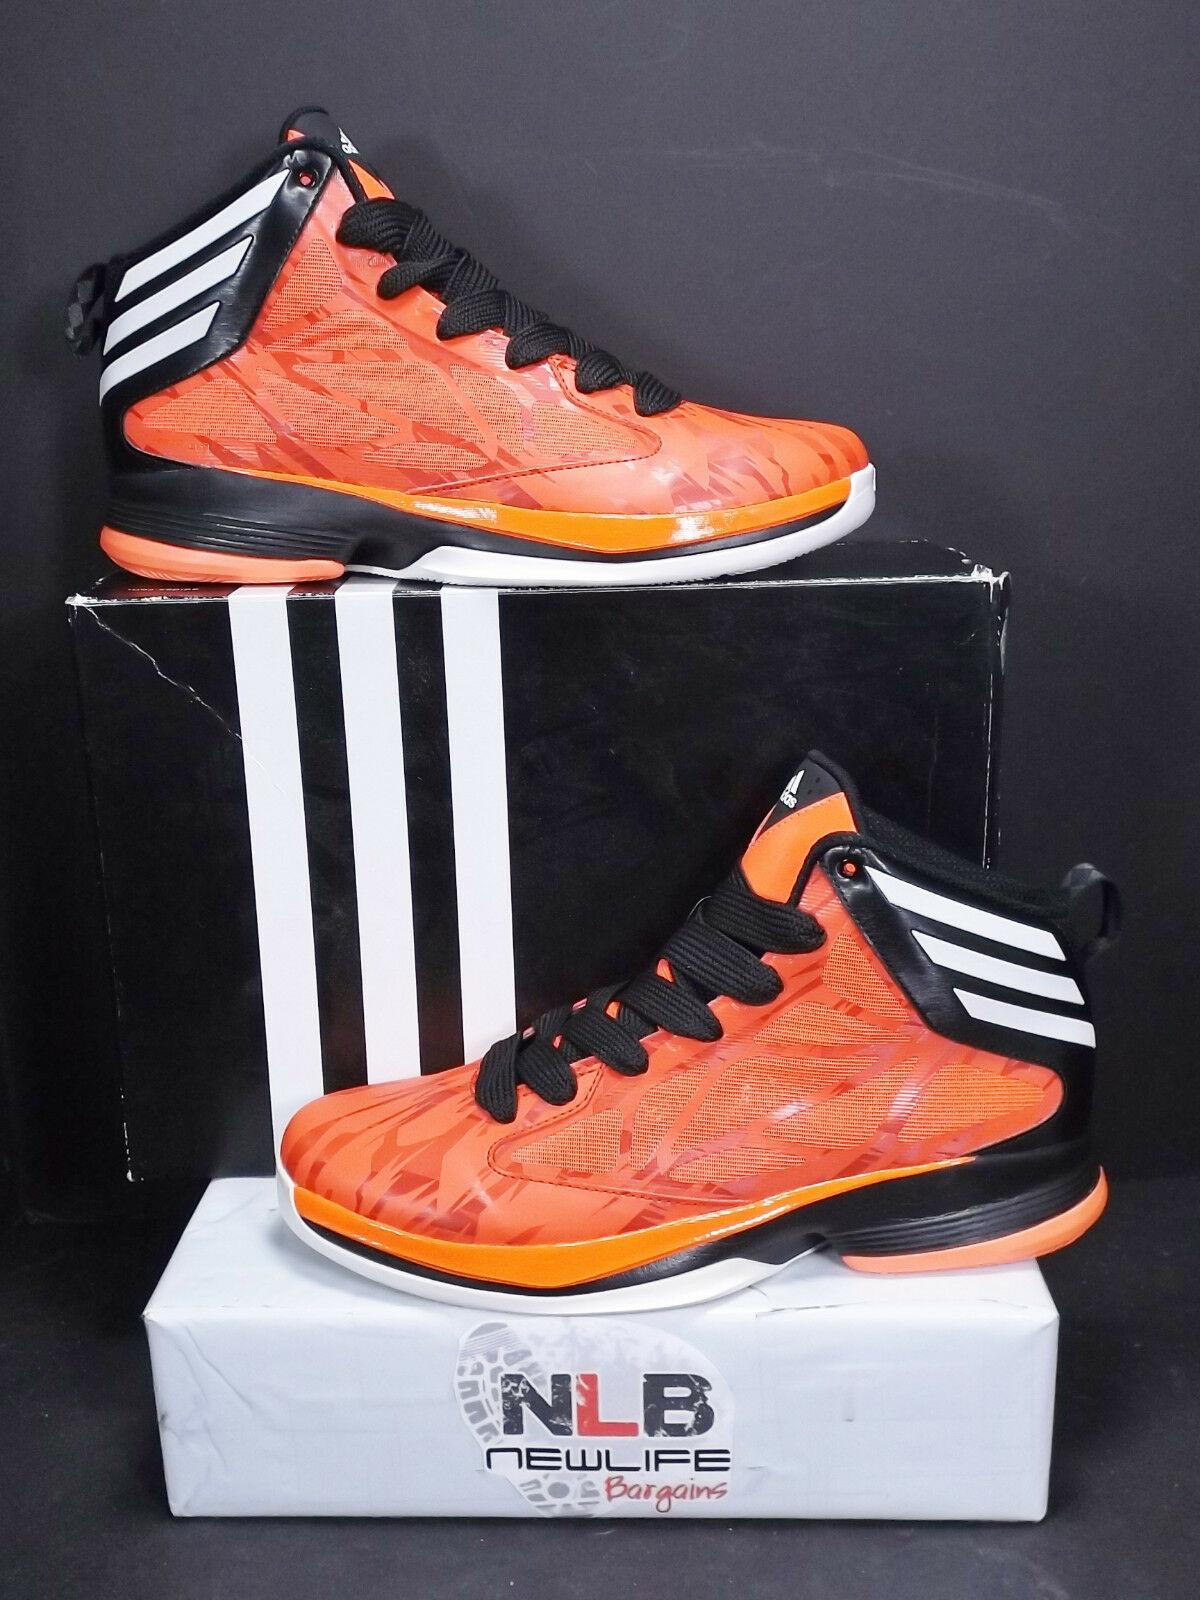 2012 Shoes Adidas Crazy Fast Basketball Shoes 2012 G59724 Infra Red Men's Size 12 56c077